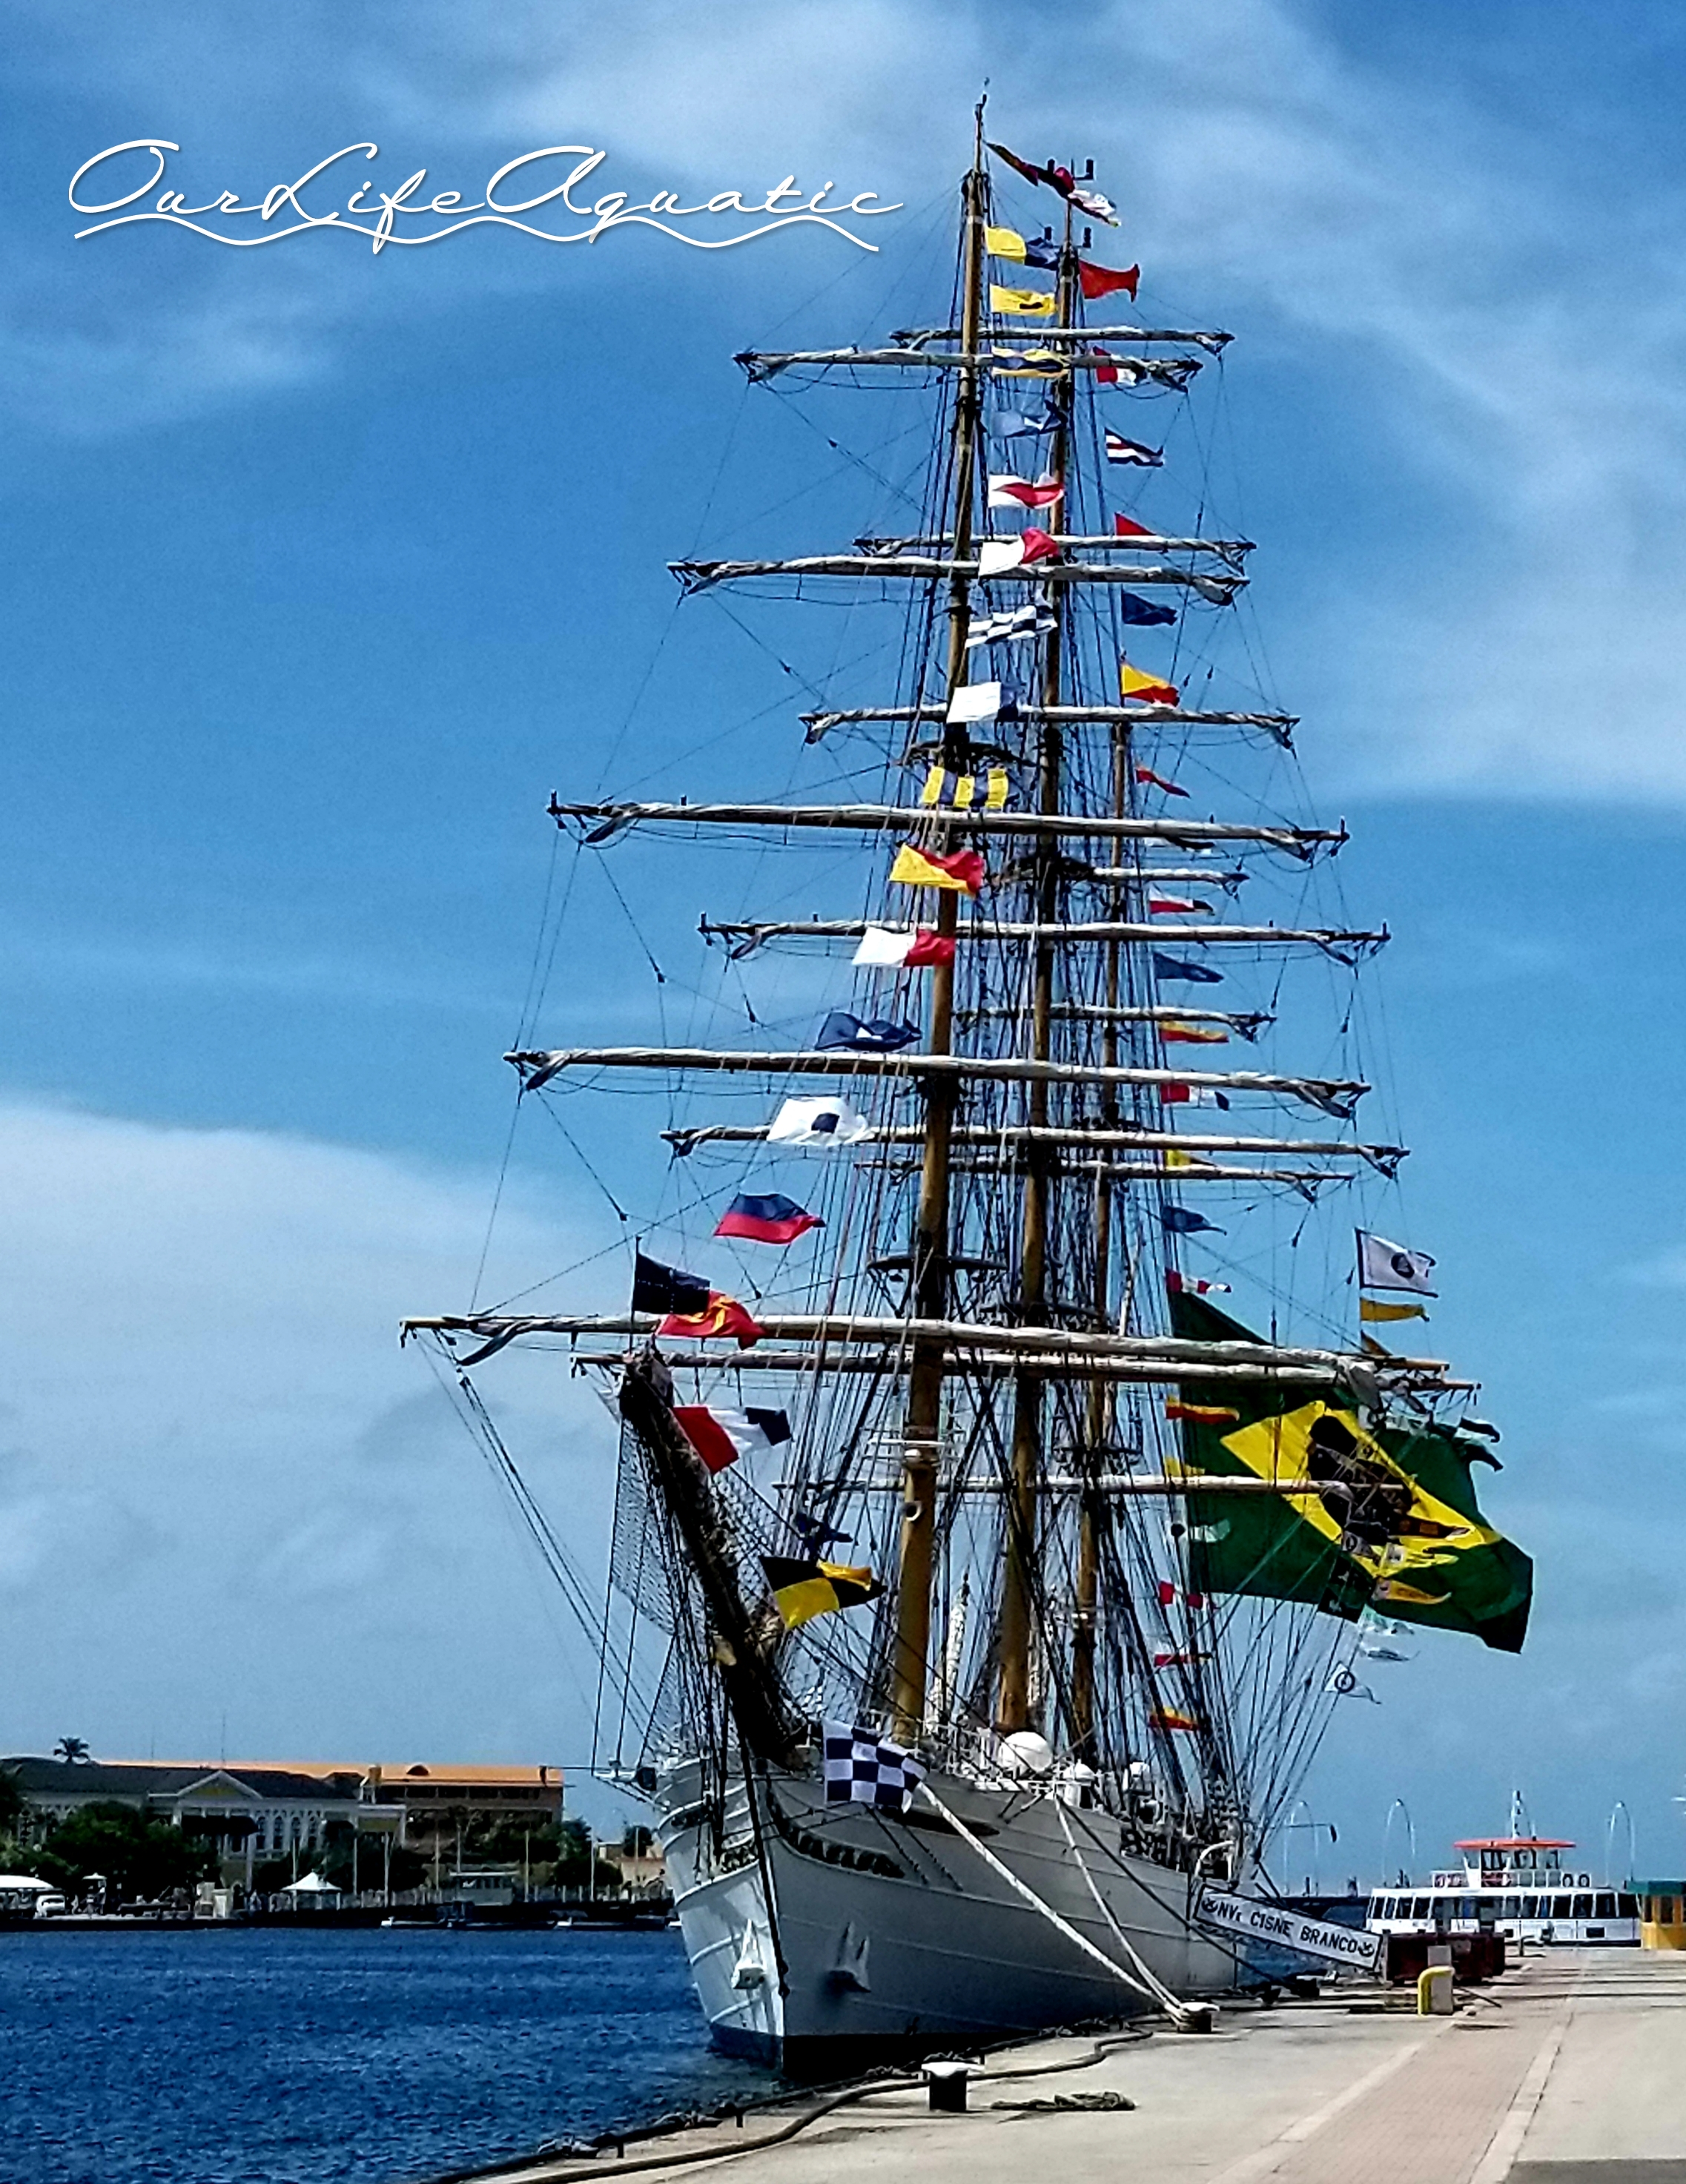 Not Blue In Curaao Our Life Aquatic Parts Of A Tall Ship For Pinterest This Brazilian Added To The Downtown Beauty Day We Checked Out